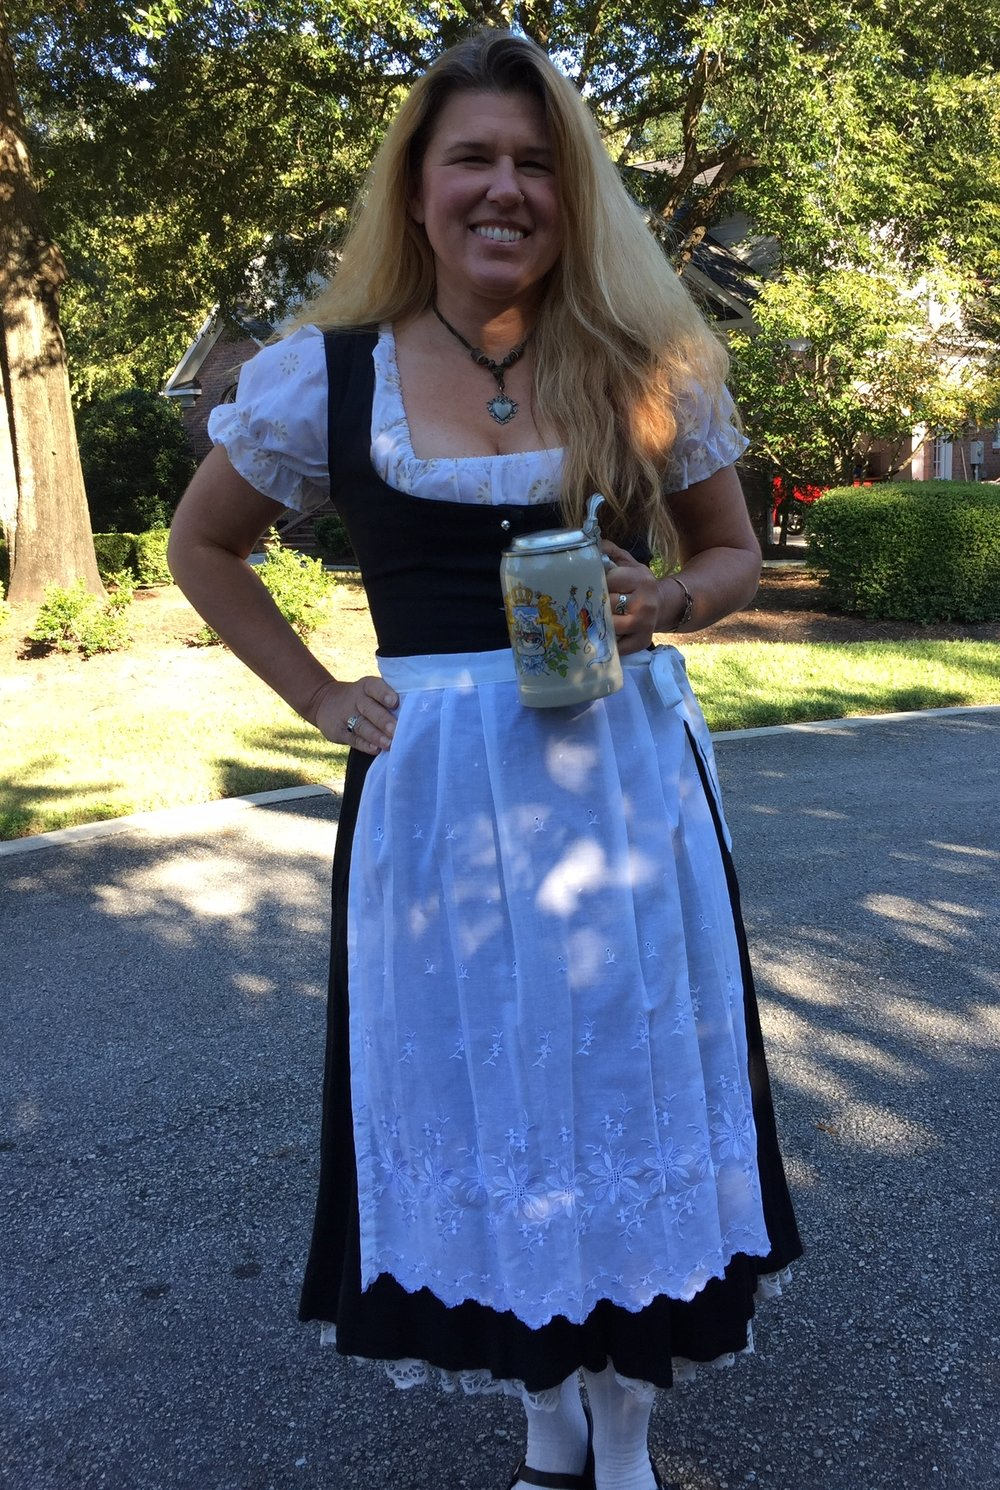 Yes I am that nerd who wears a dirndl to Oktoberfest, even in the US.